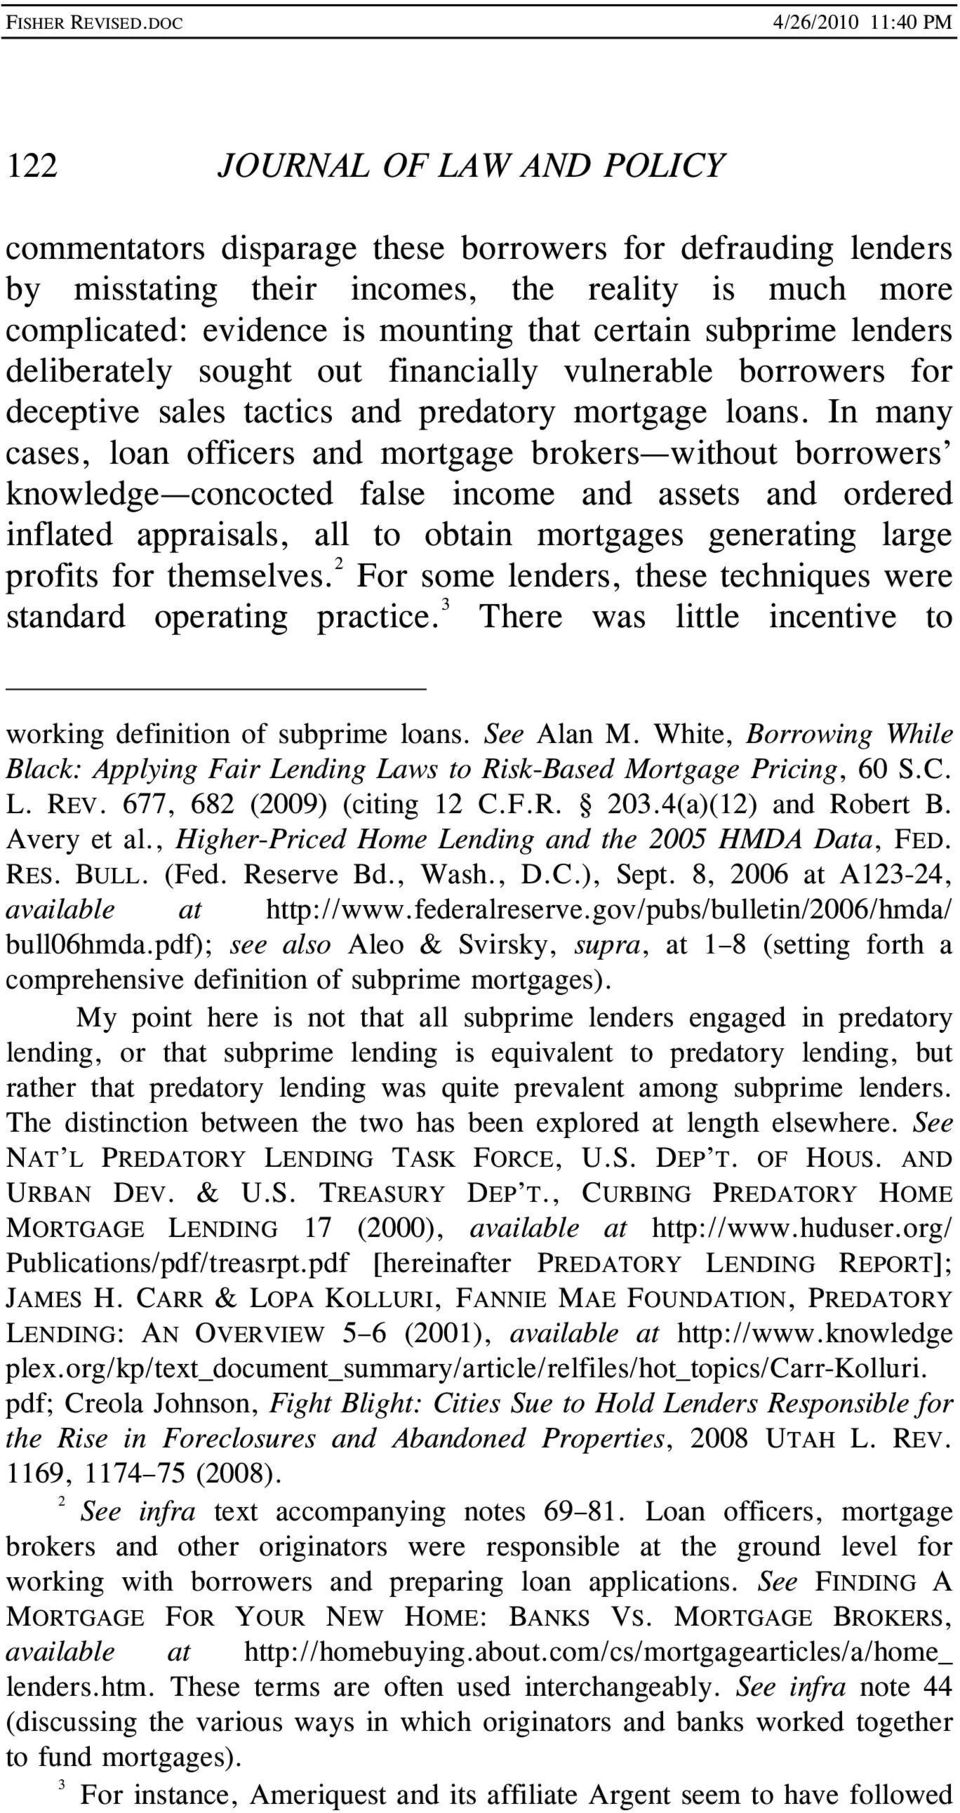 In many cases, loan officers and mortgage brokers without borrowers knowledge concocted false income and assets and ordered inflated appraisals, all to obtain mortgages generating large profits for